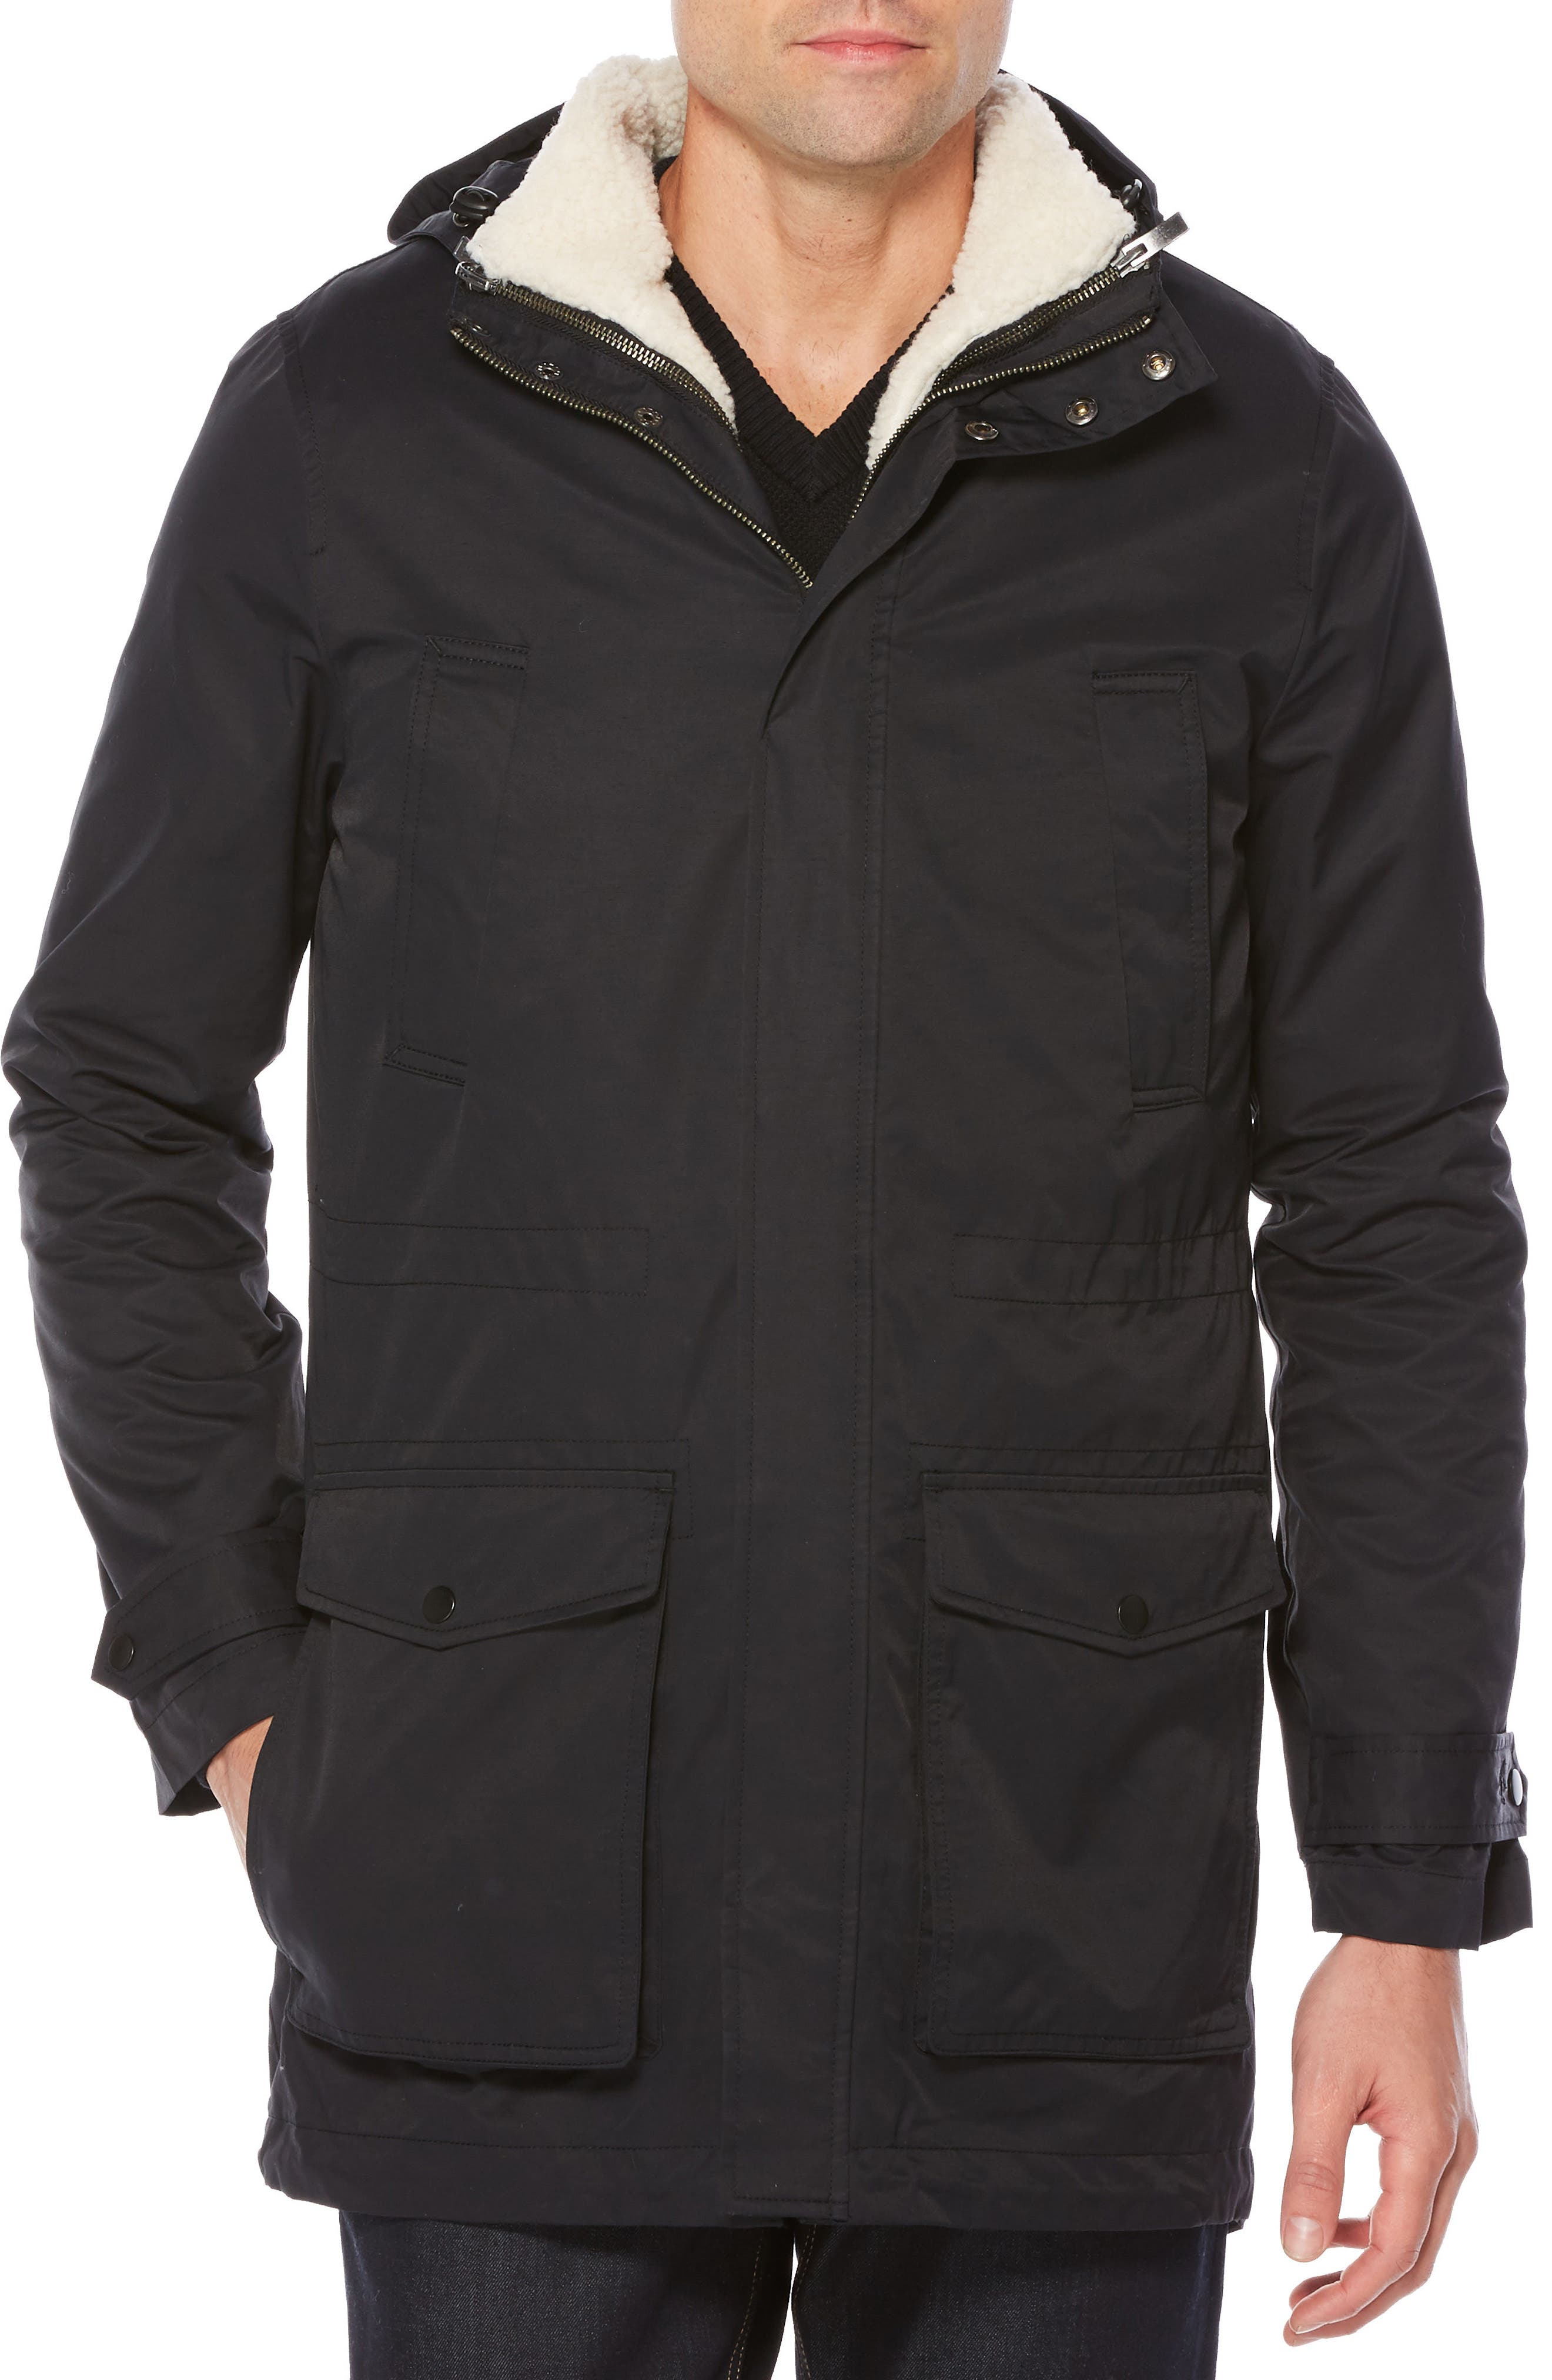 4-in-1 Water Resistant Jacket,                         Main,                         color, 010